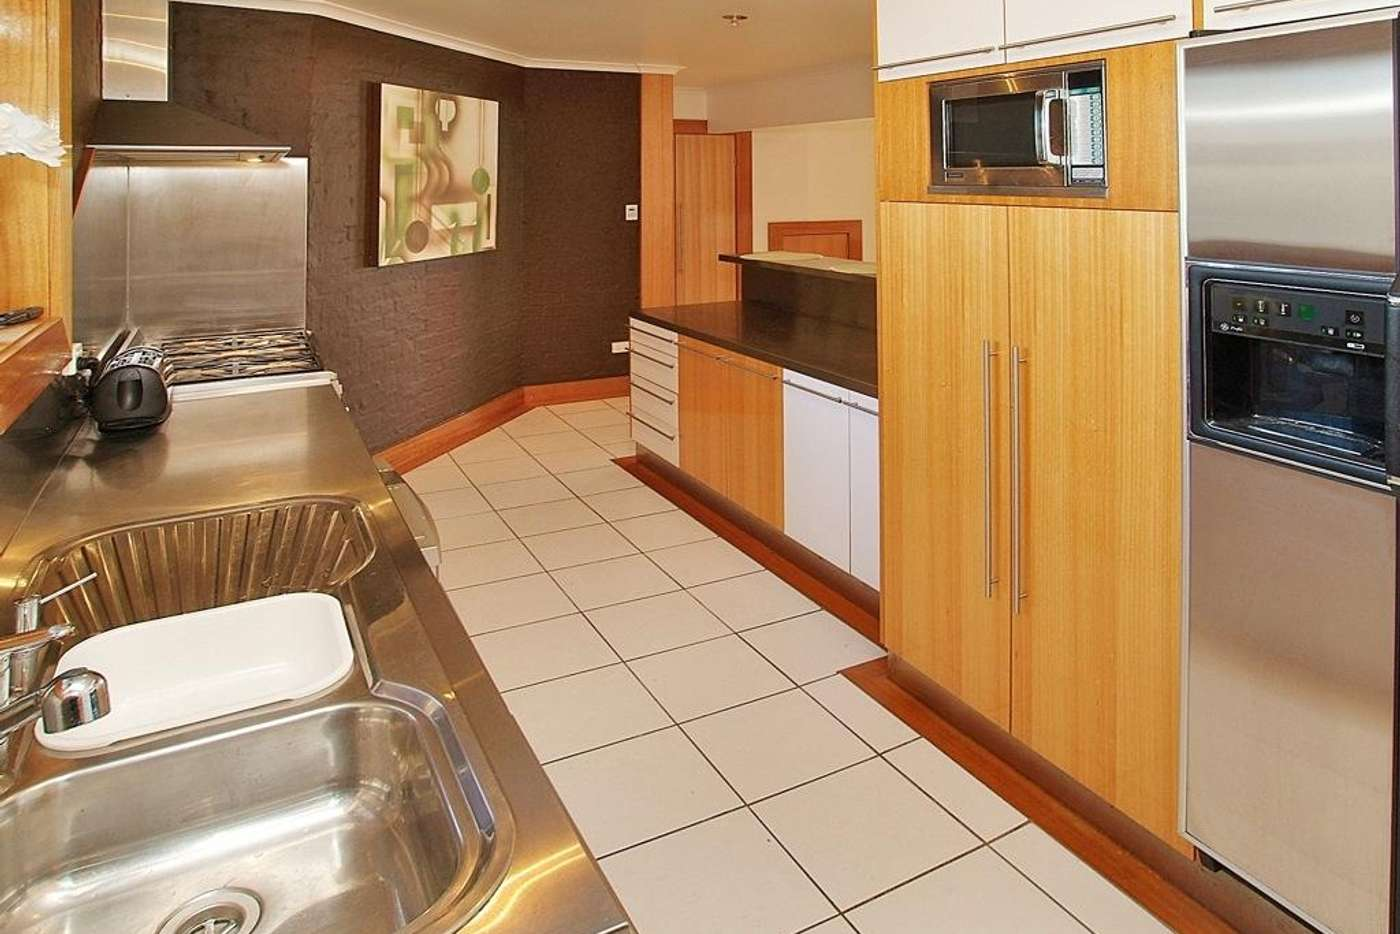 Sixth view of Homely unit listing, 8/1 St Pauls Terrace, Spring Hill QLD 4000